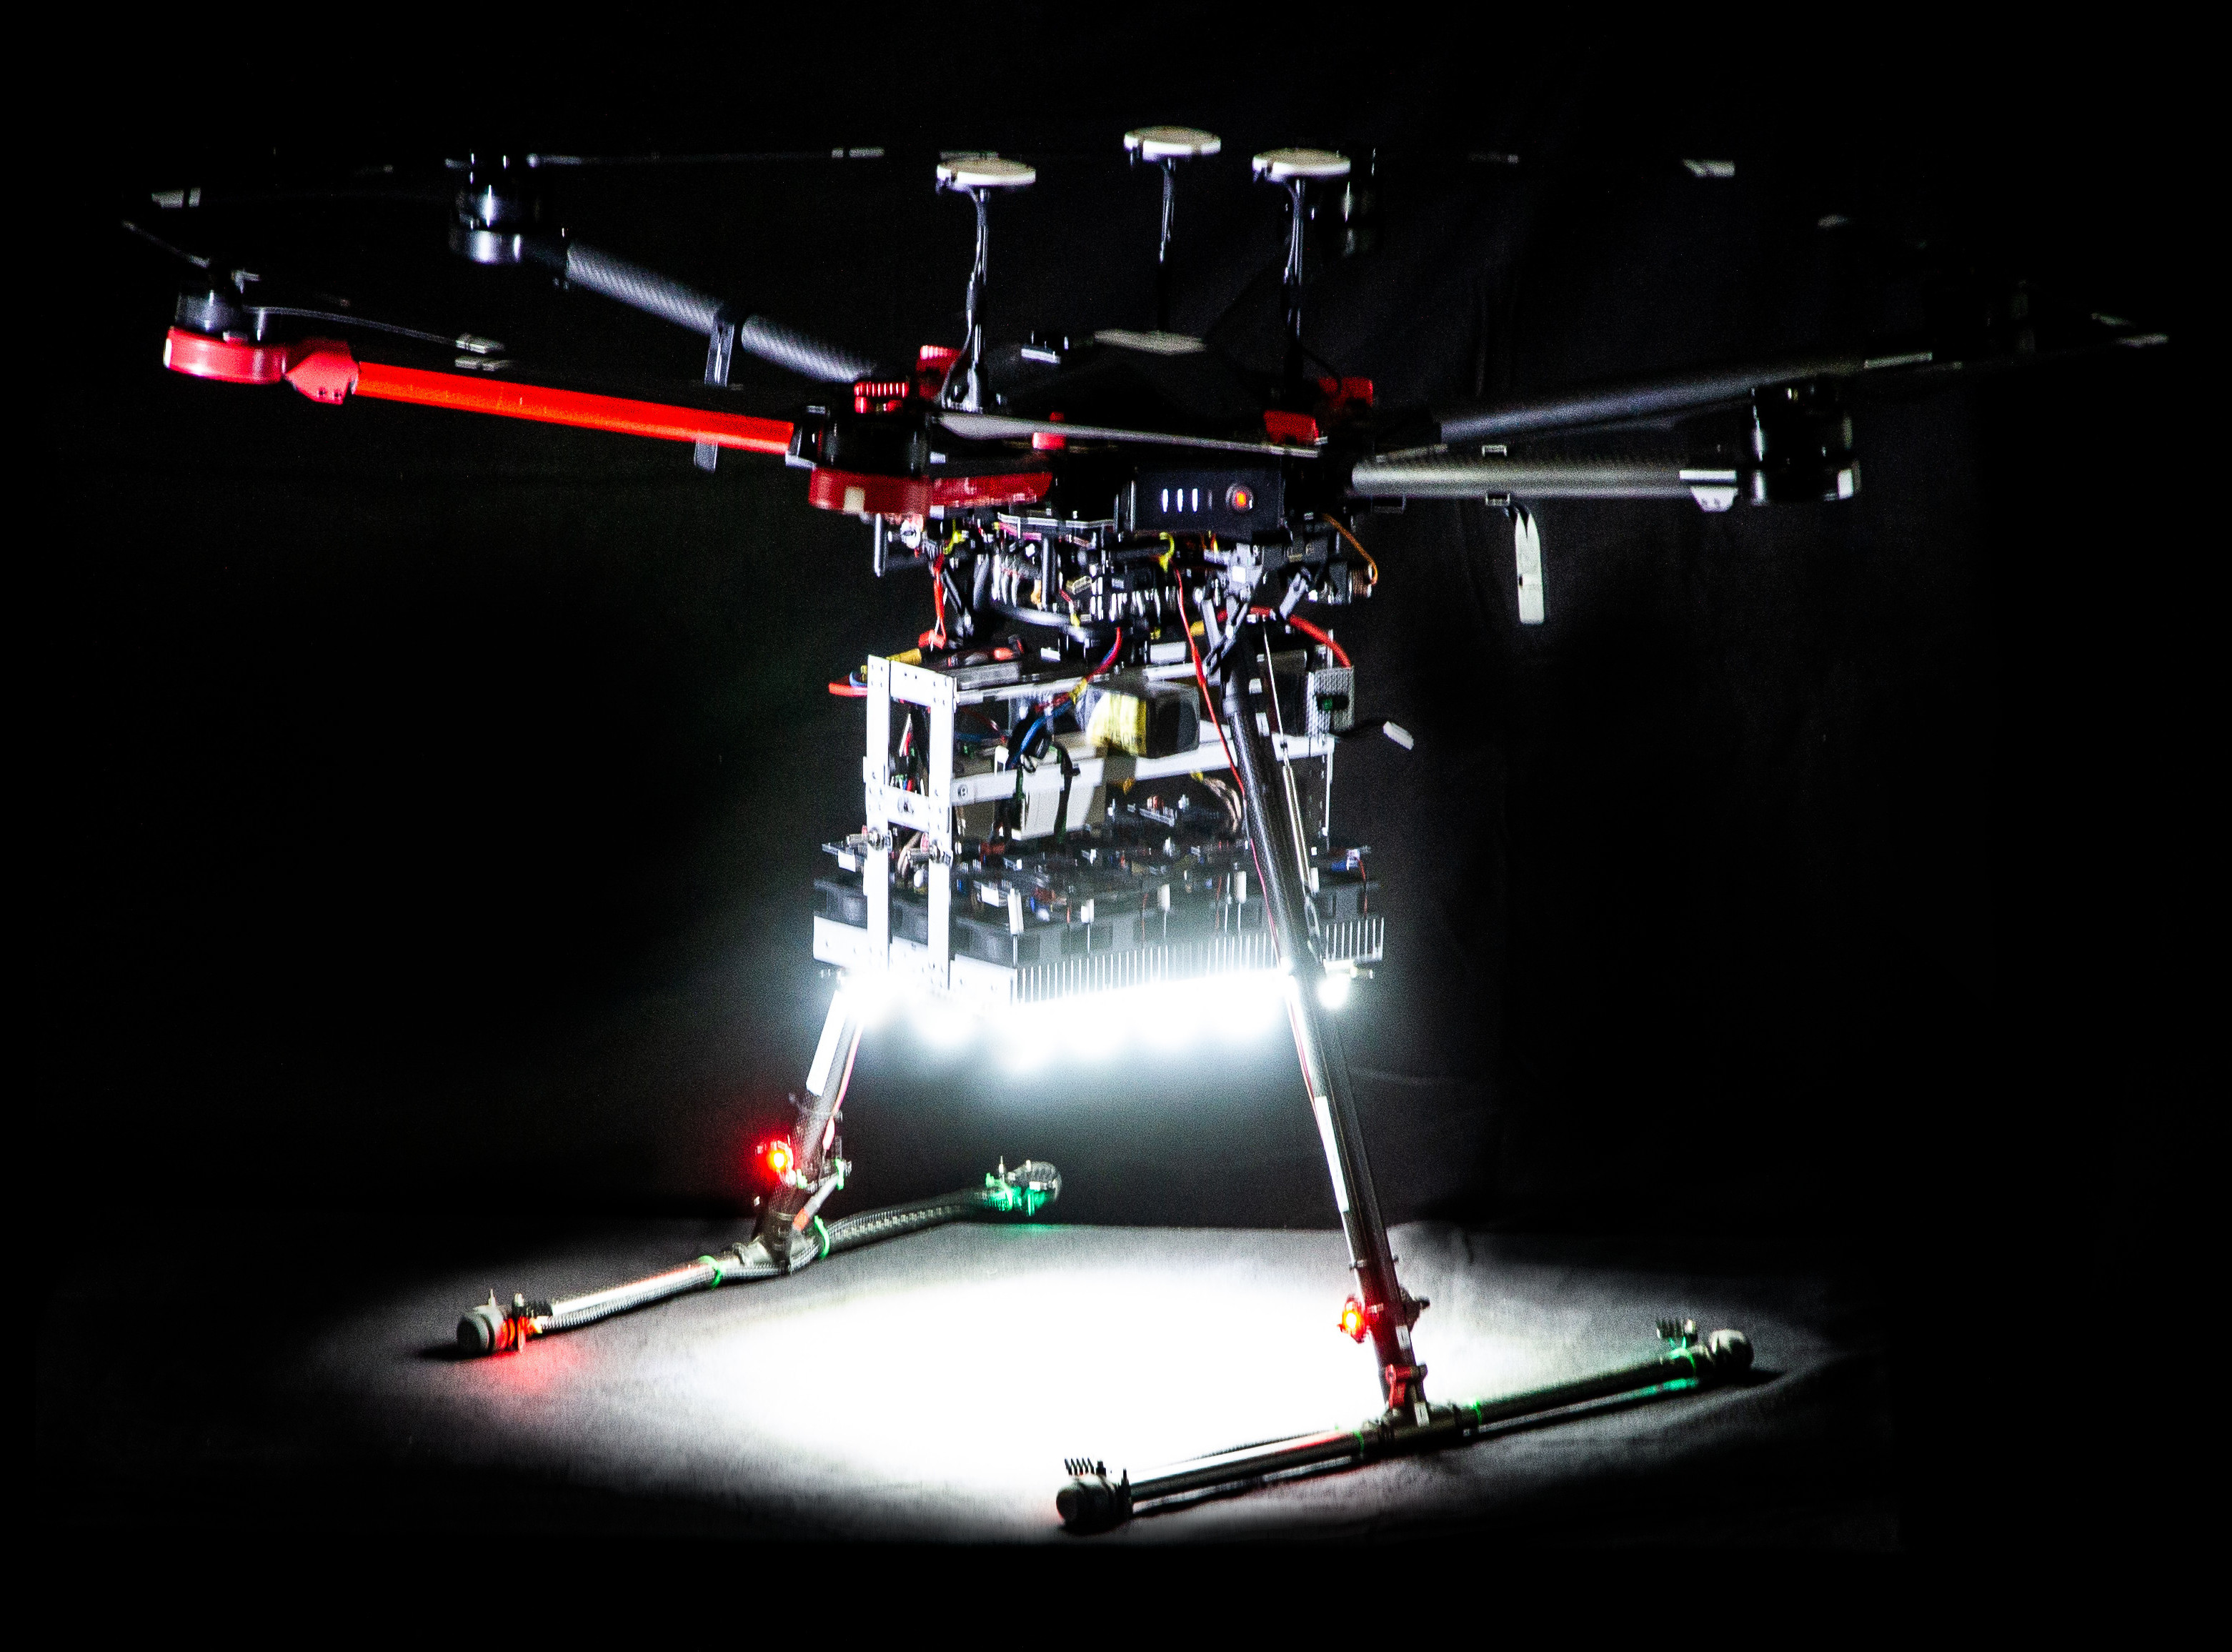 LED Drohne moving lights luftaufnahmen münchen 150.000 lumen aerial led drone light team munich germany bavaria